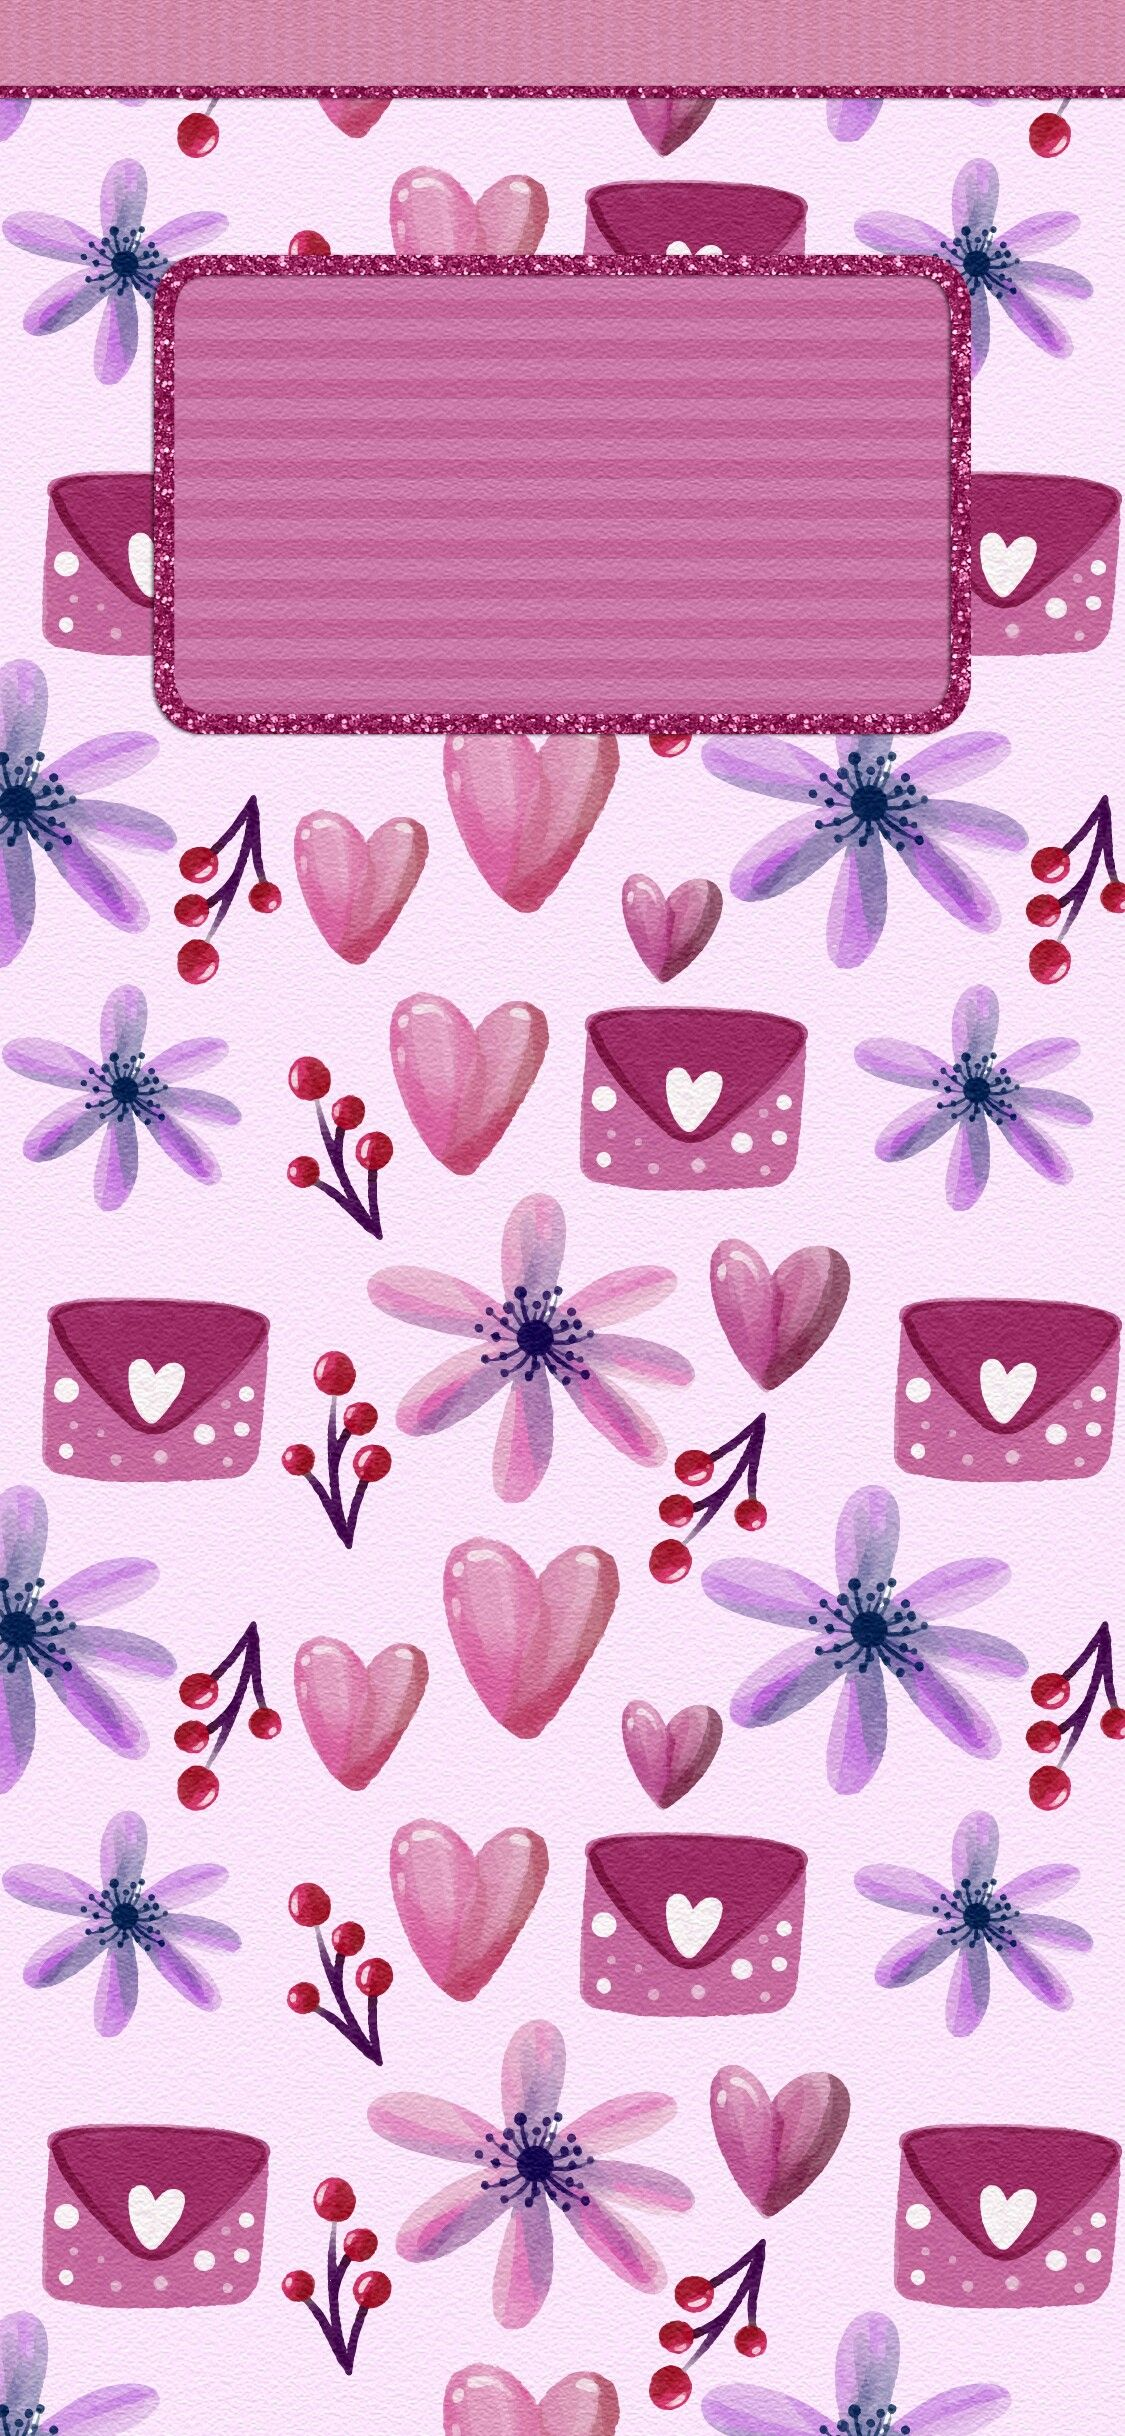 Pin on Cute wallpapers